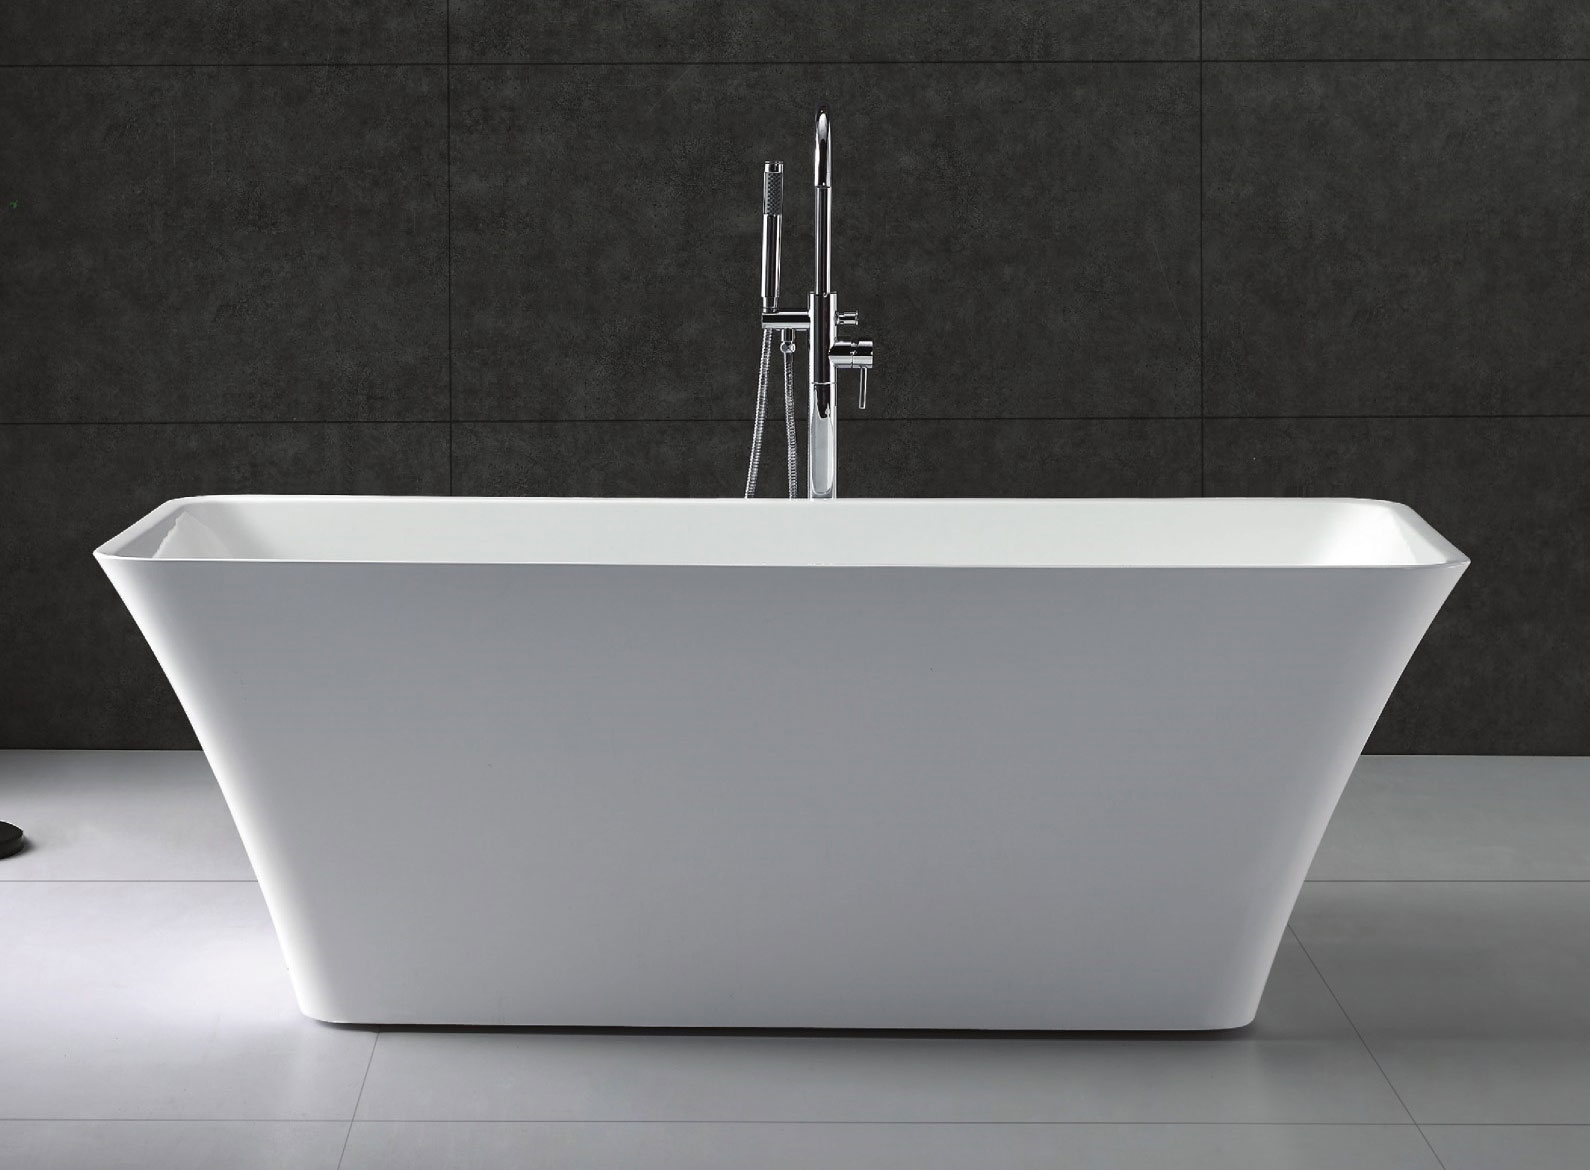 Rectangular Freestanding Soaking Tub